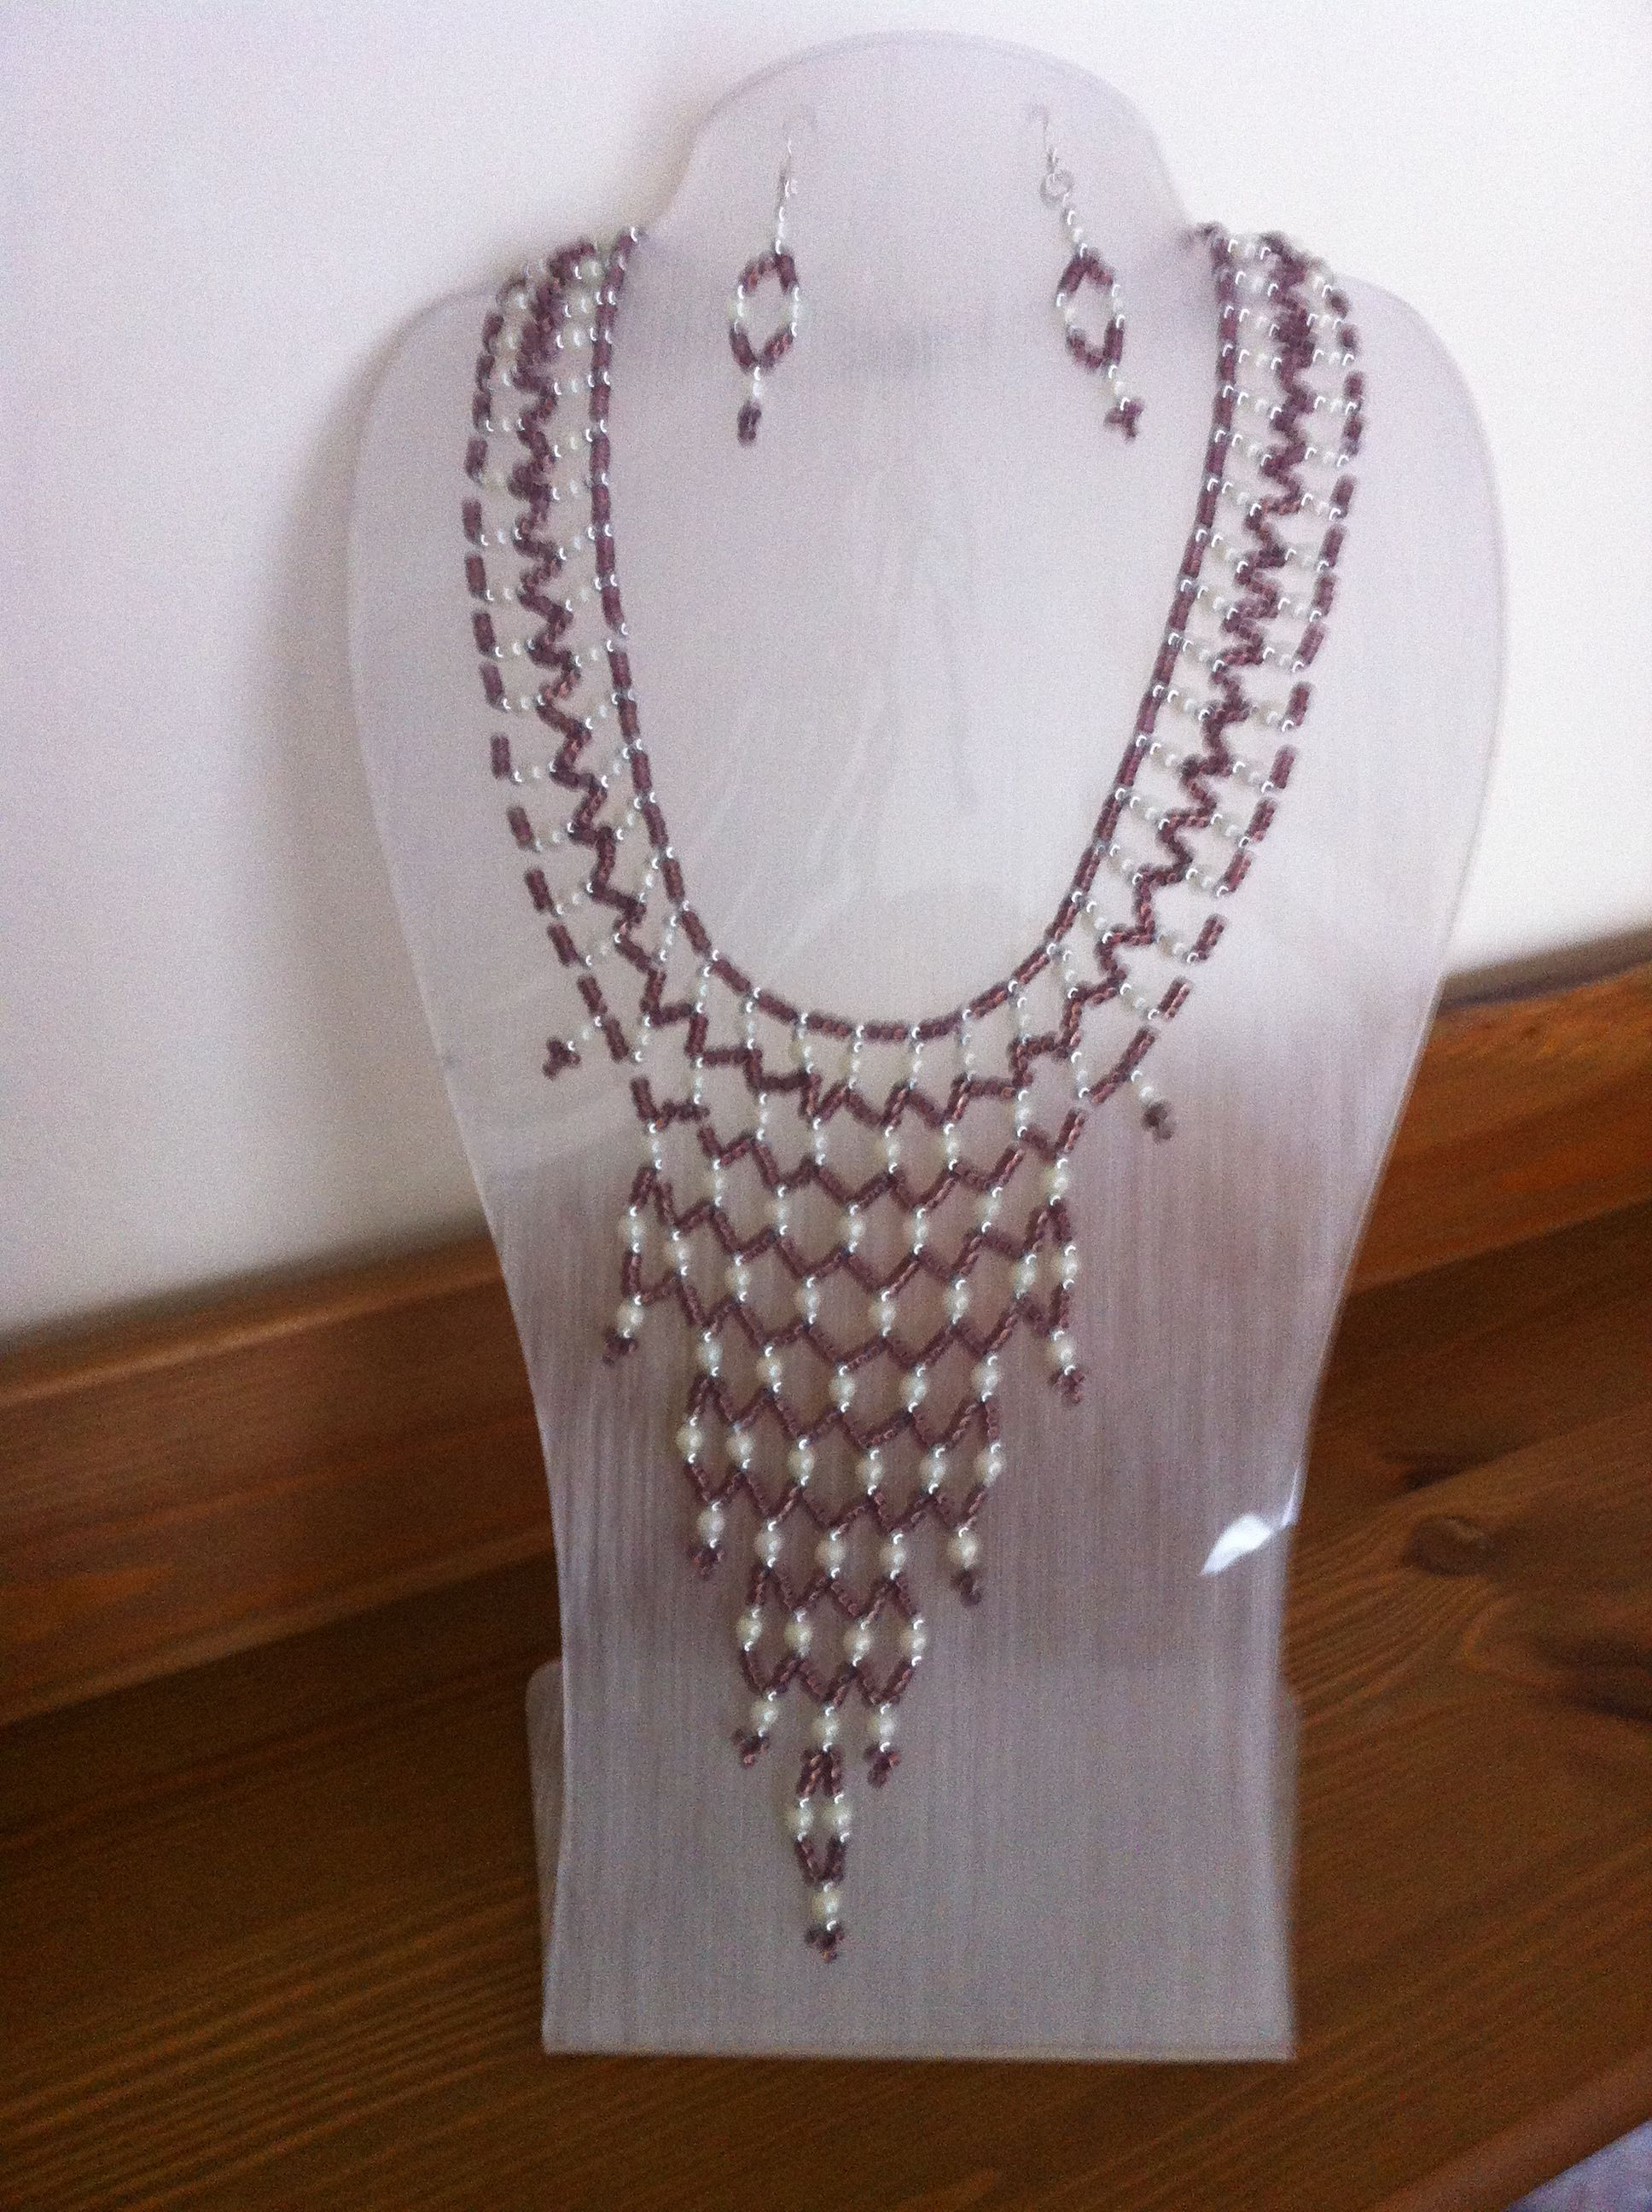 Necklace & earrings. Brown & white seed beads, with silver findings.